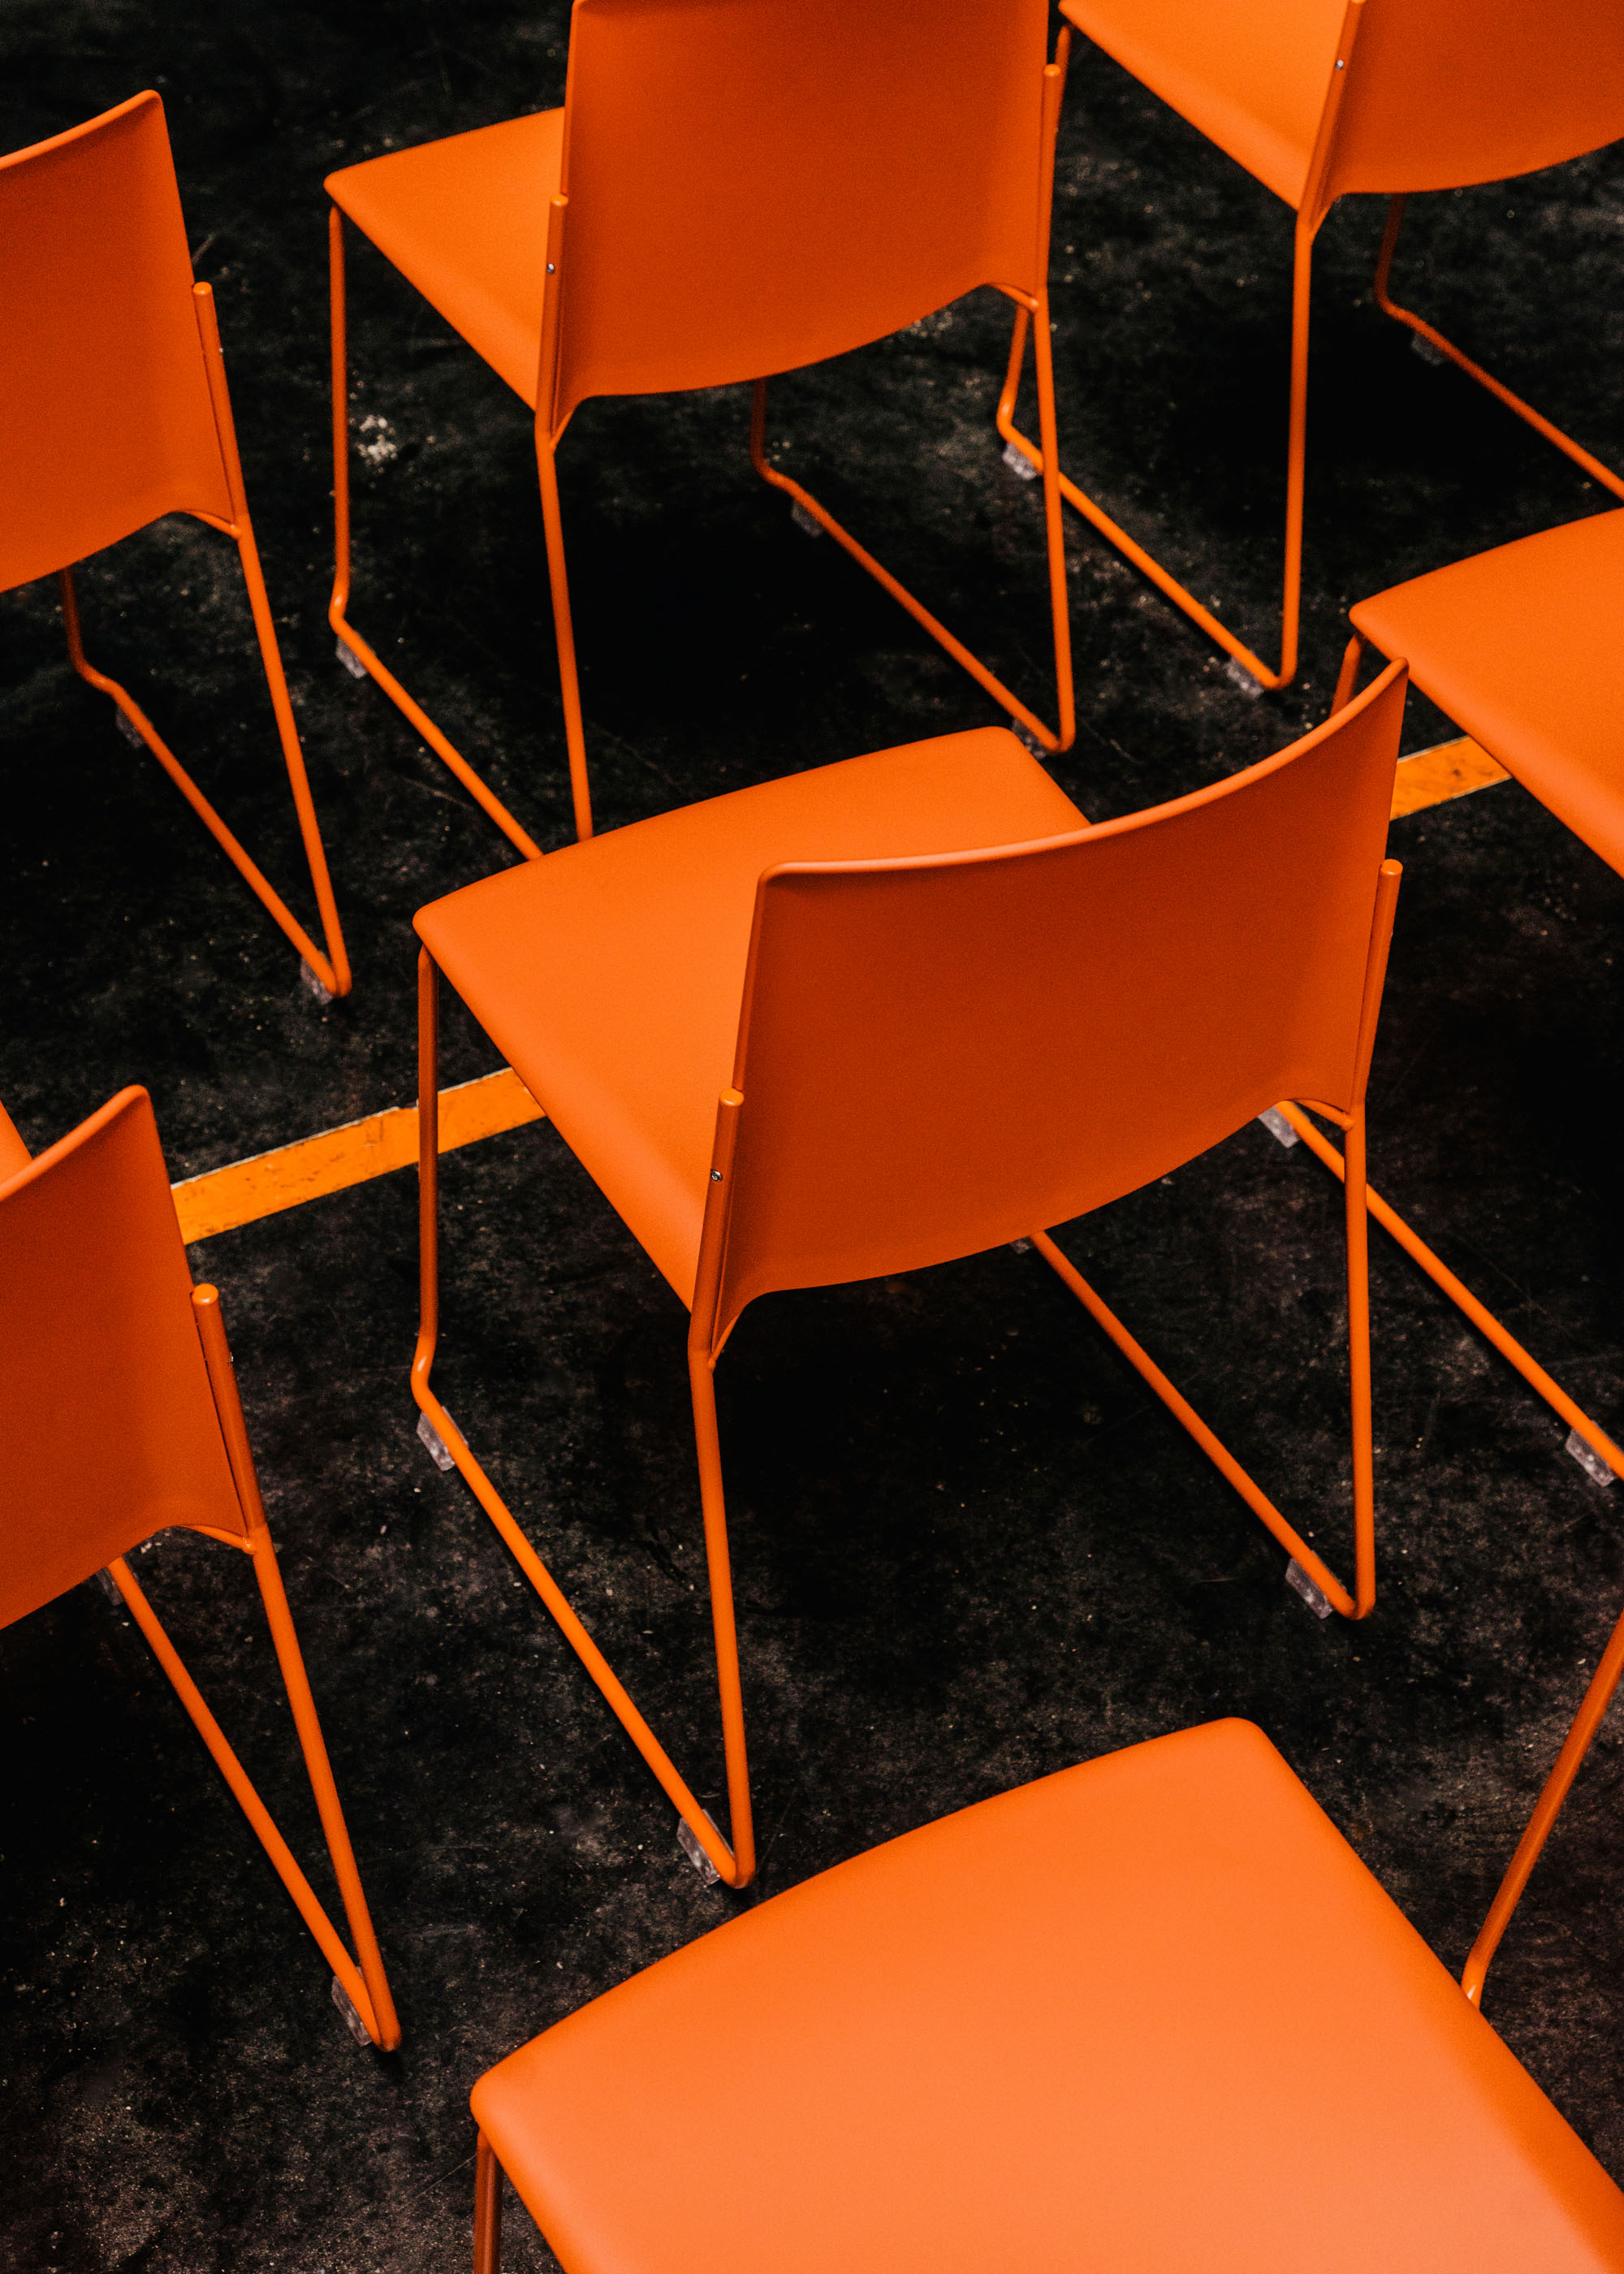 #furniture #enea #design #clase #chairs #orange #basque #fronton